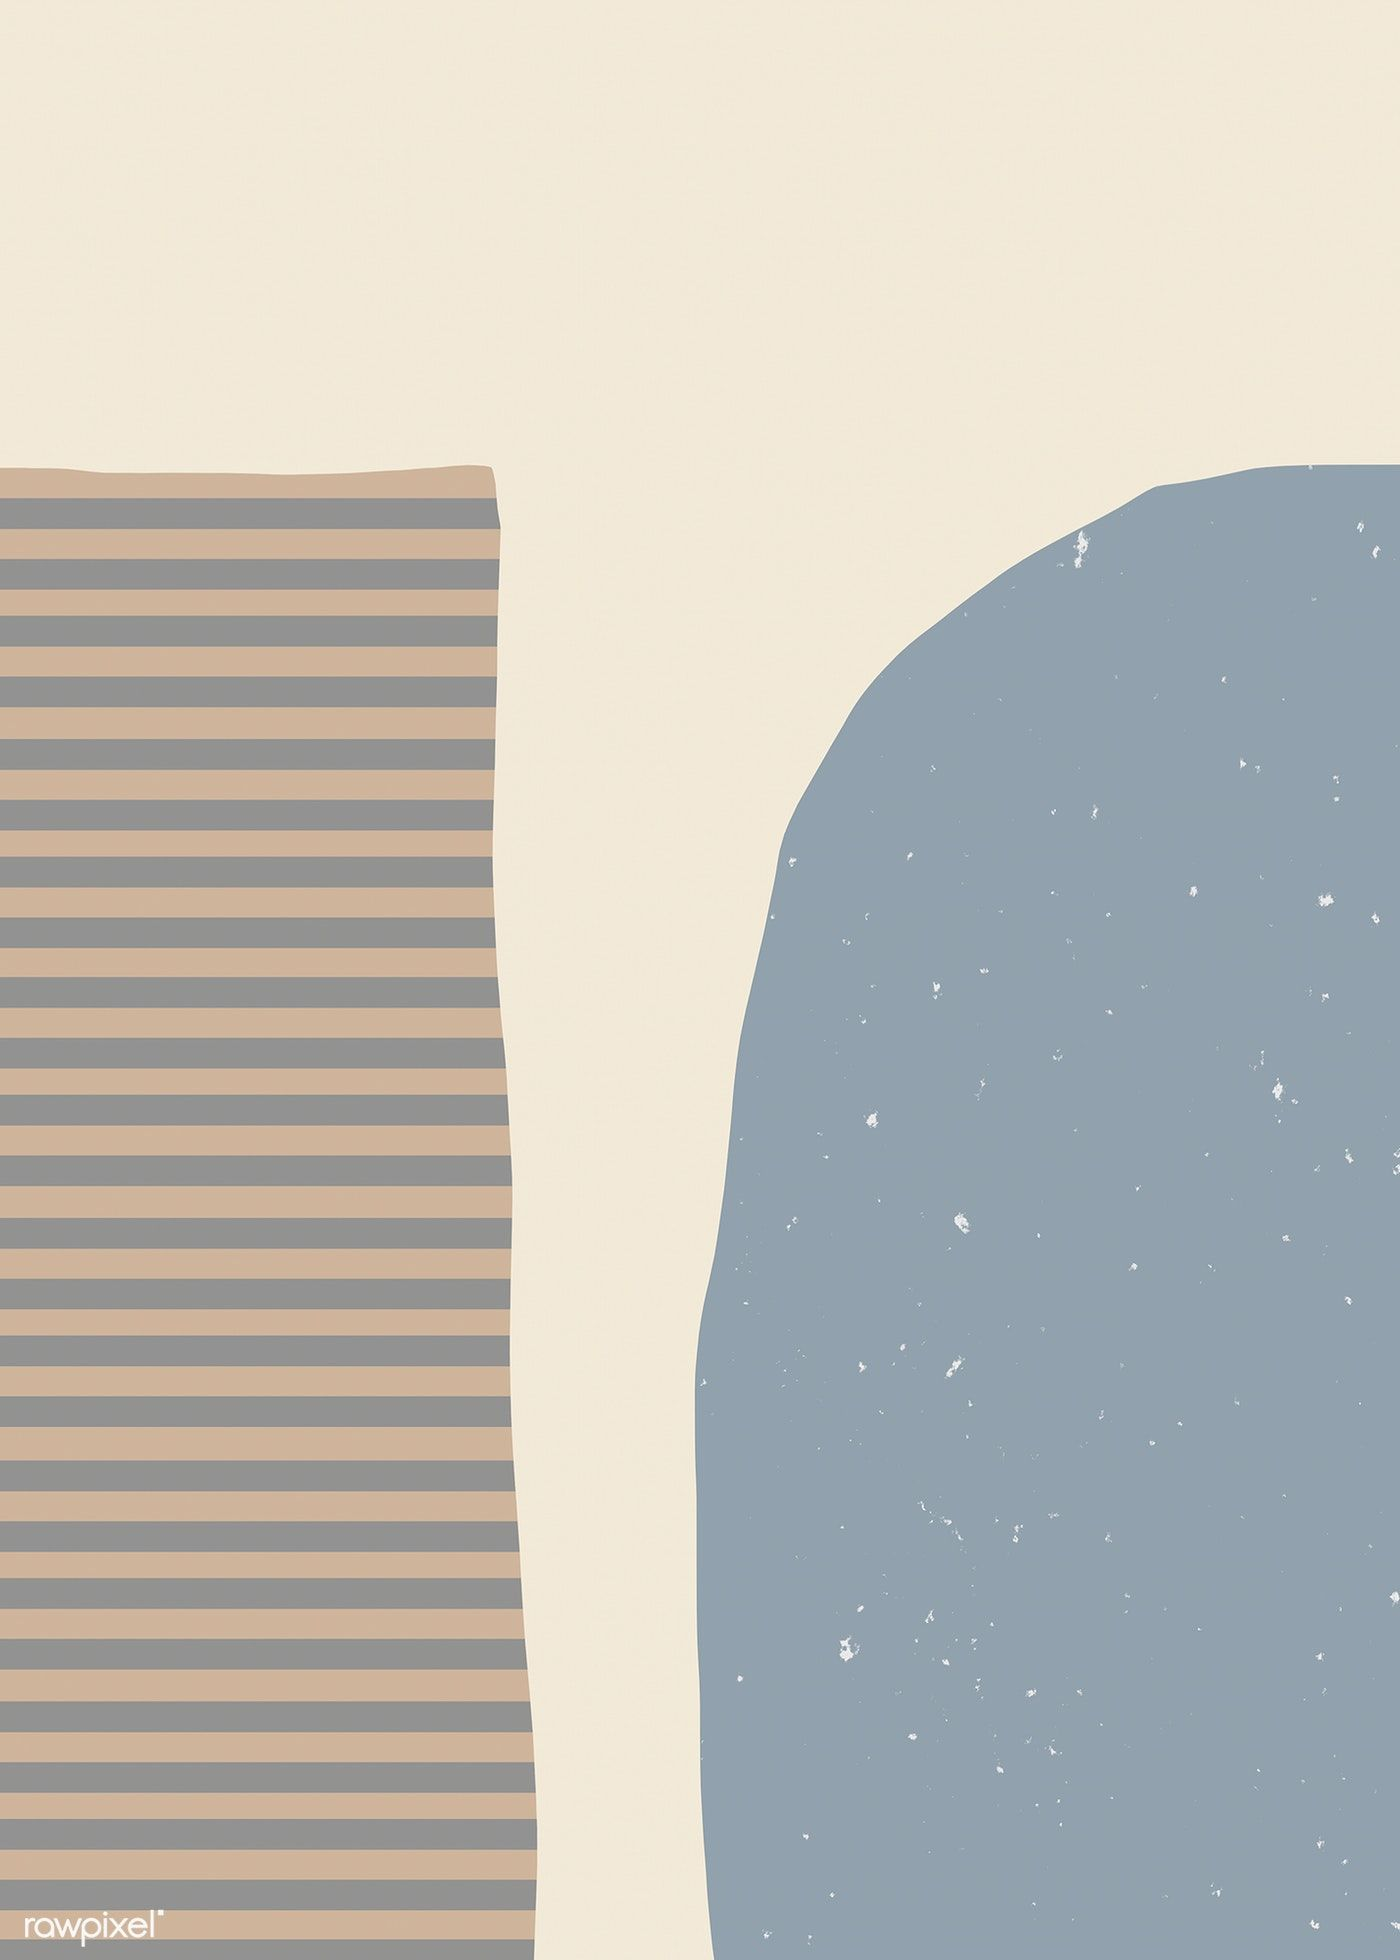 Download free illustration of Stylish Memphis abstract background design